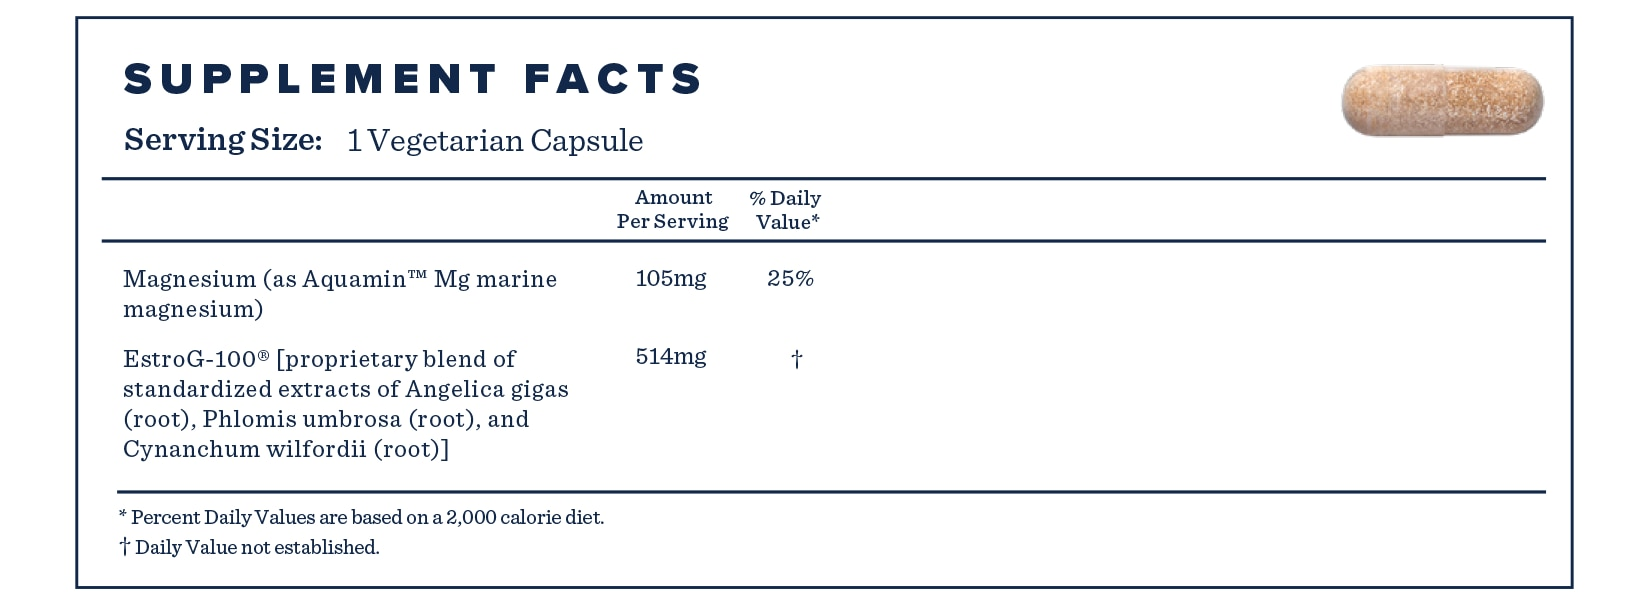 Supplement Facts for Menopause Support